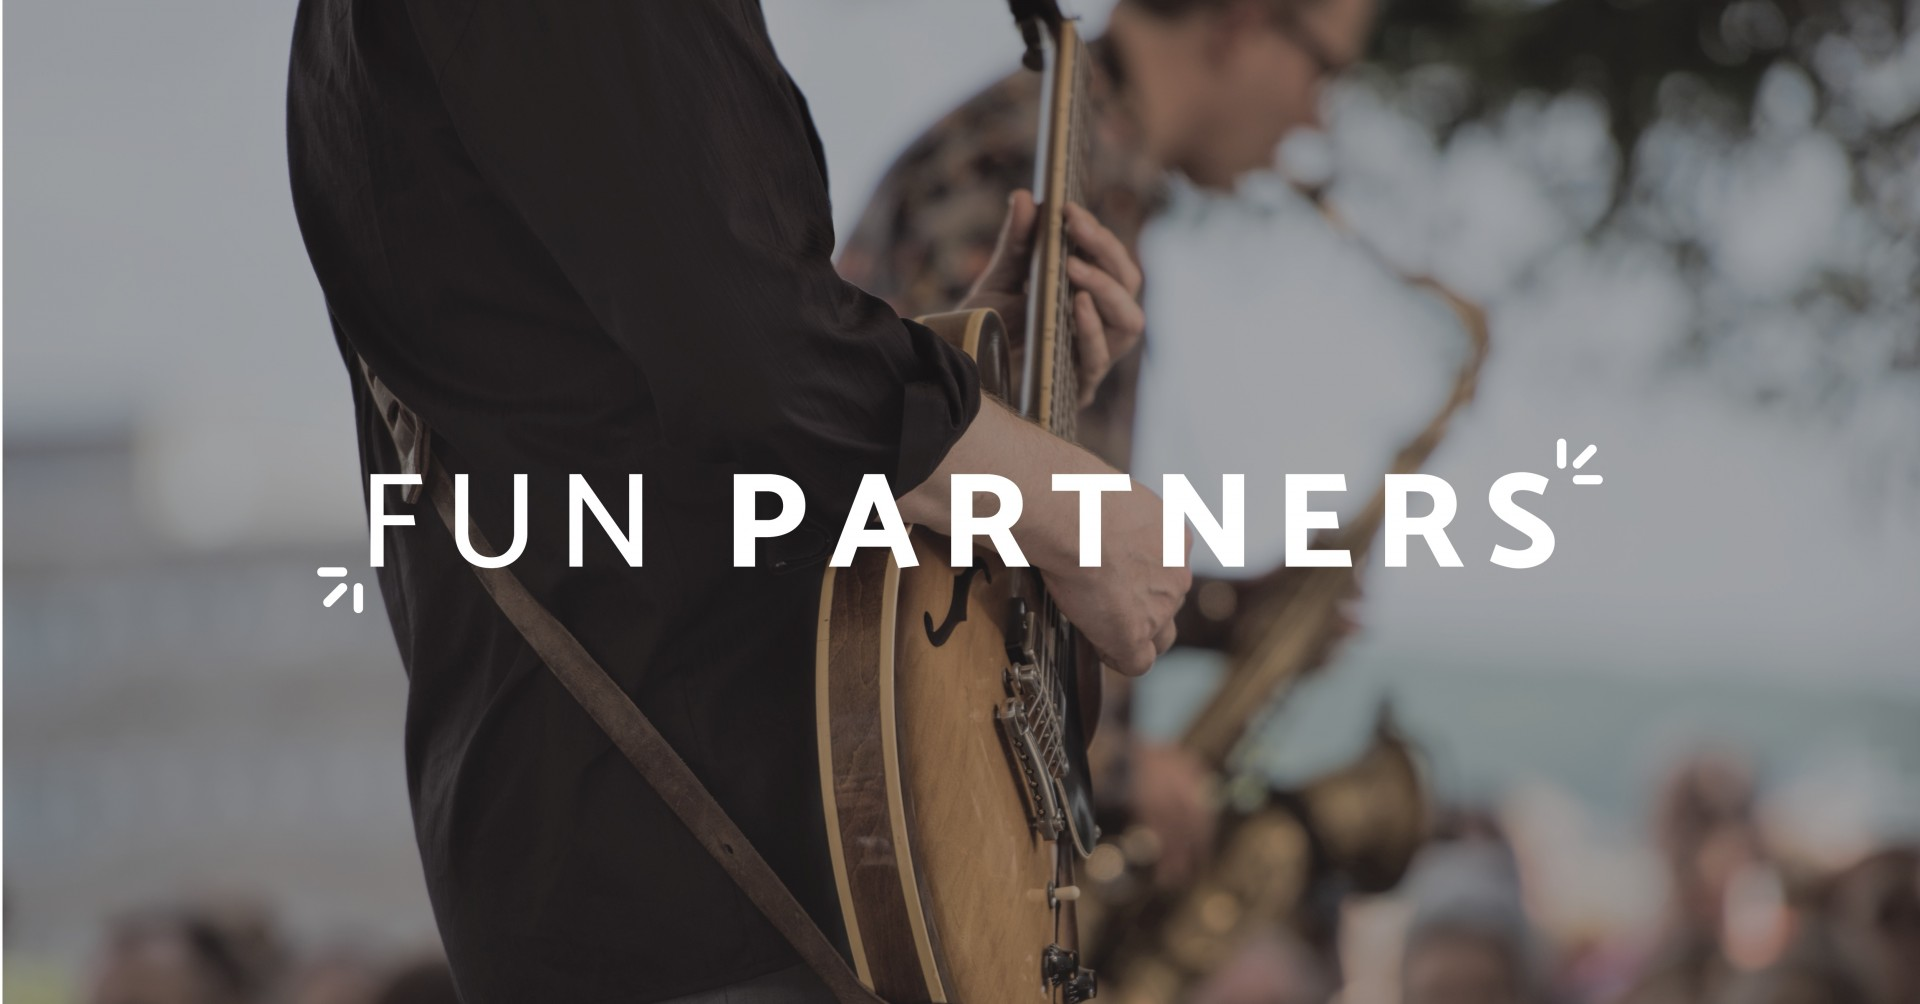 Fun Partner_Virtual Musikfest_1200x628